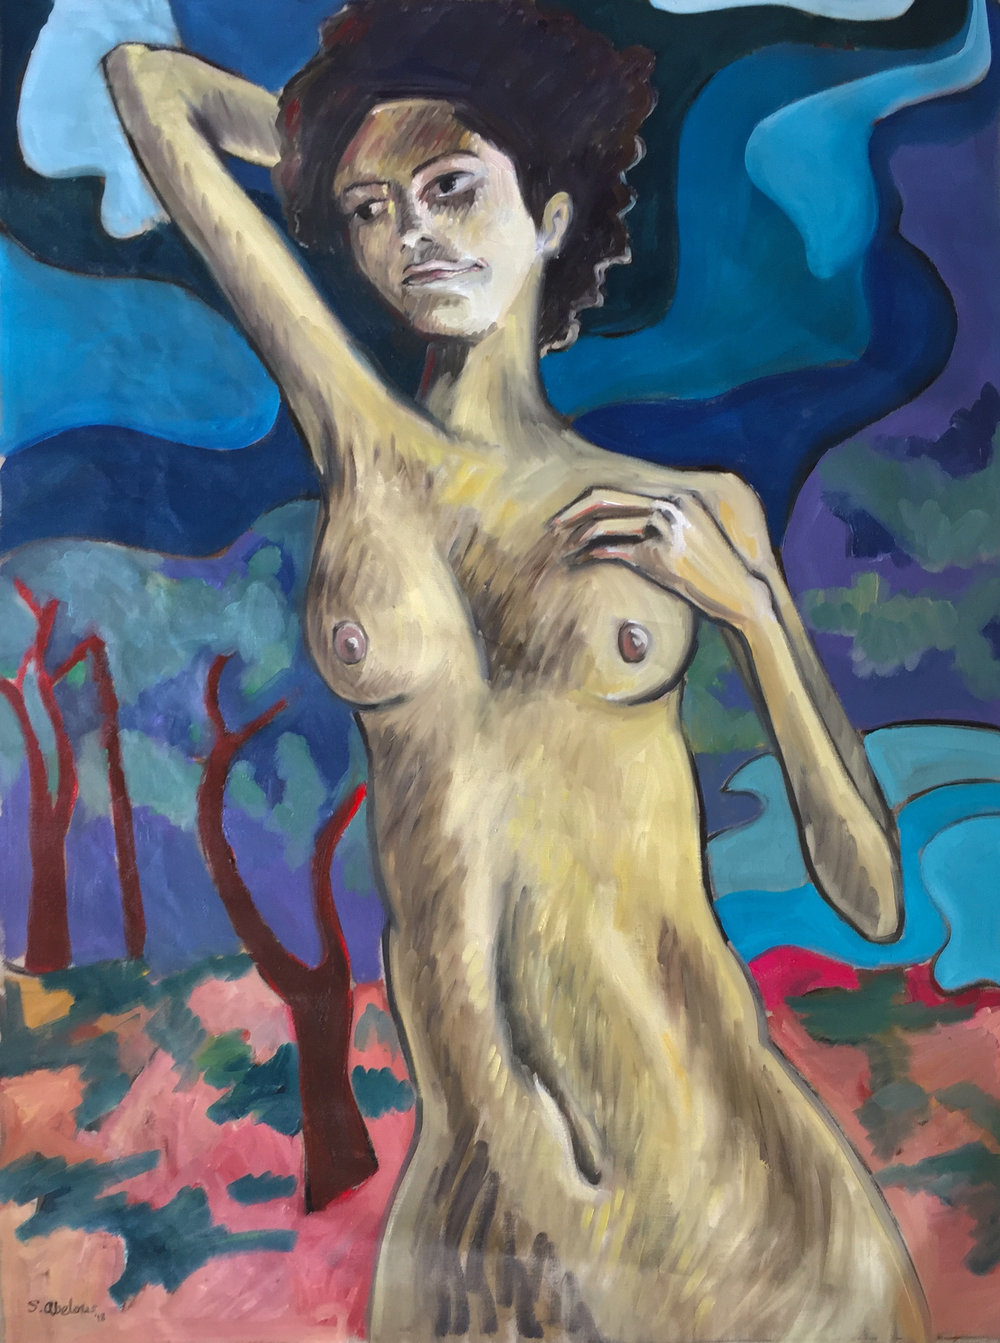 To Lay With Aphrodite. Samuel Abelow, 2018.Oil paint on un-stretched linen canvas, 48x36,